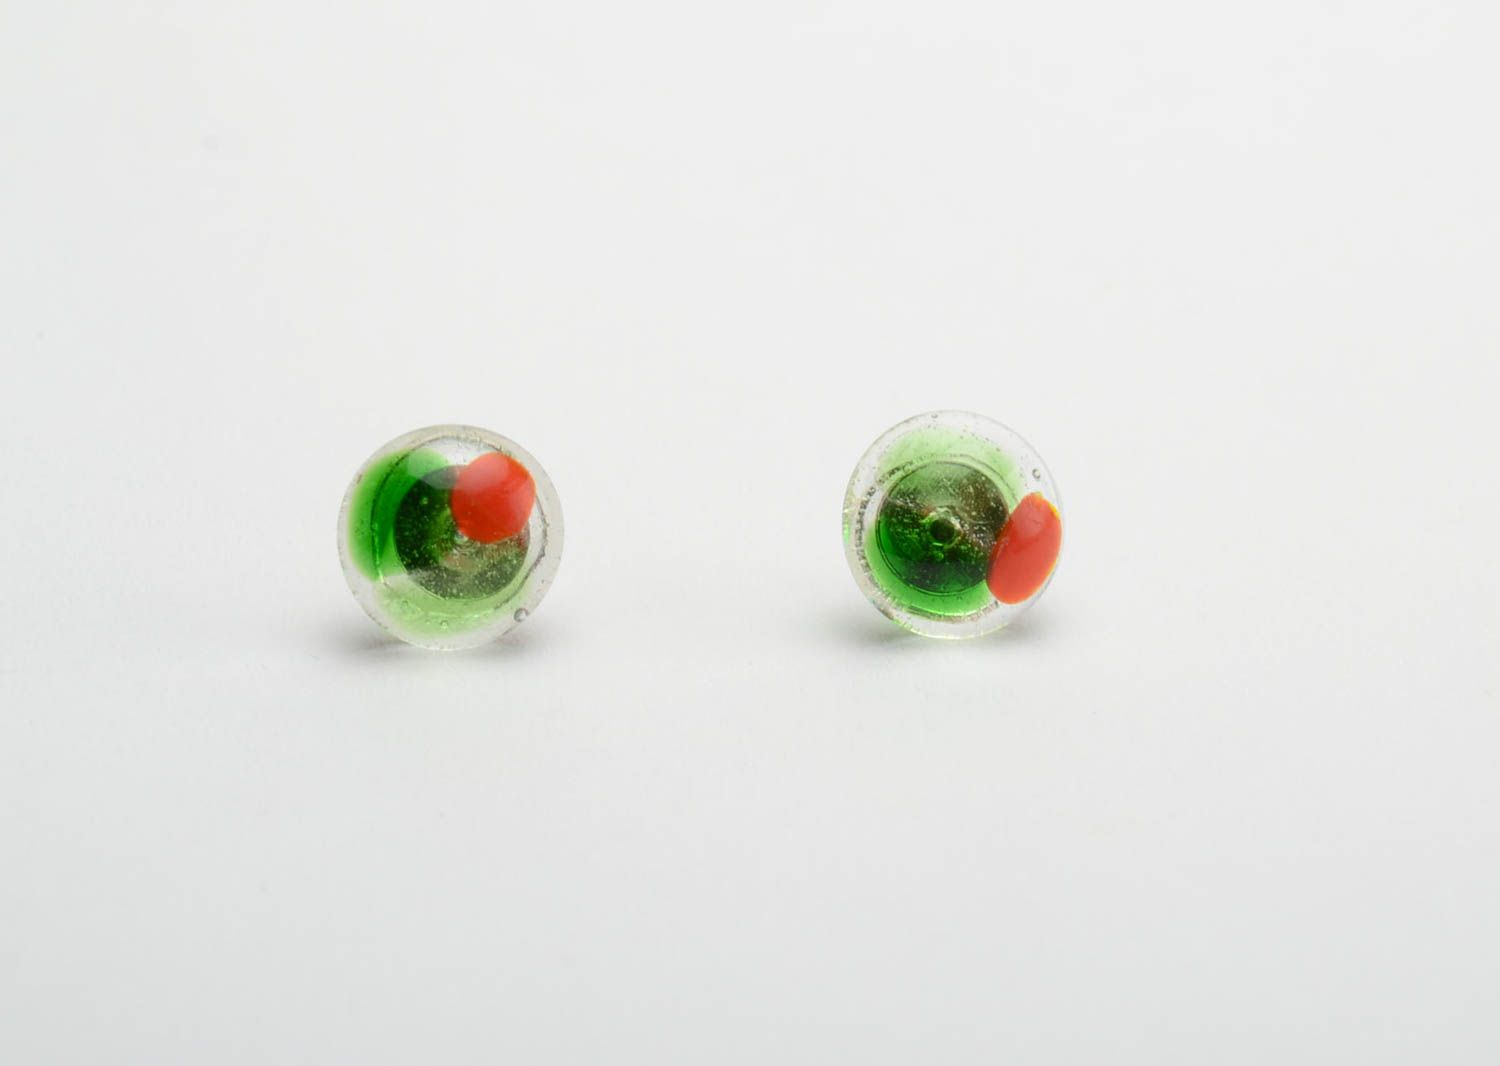 stud earrings Beautiful stud earrings glass fusing technique handmade designer accessory - MADEheart.com